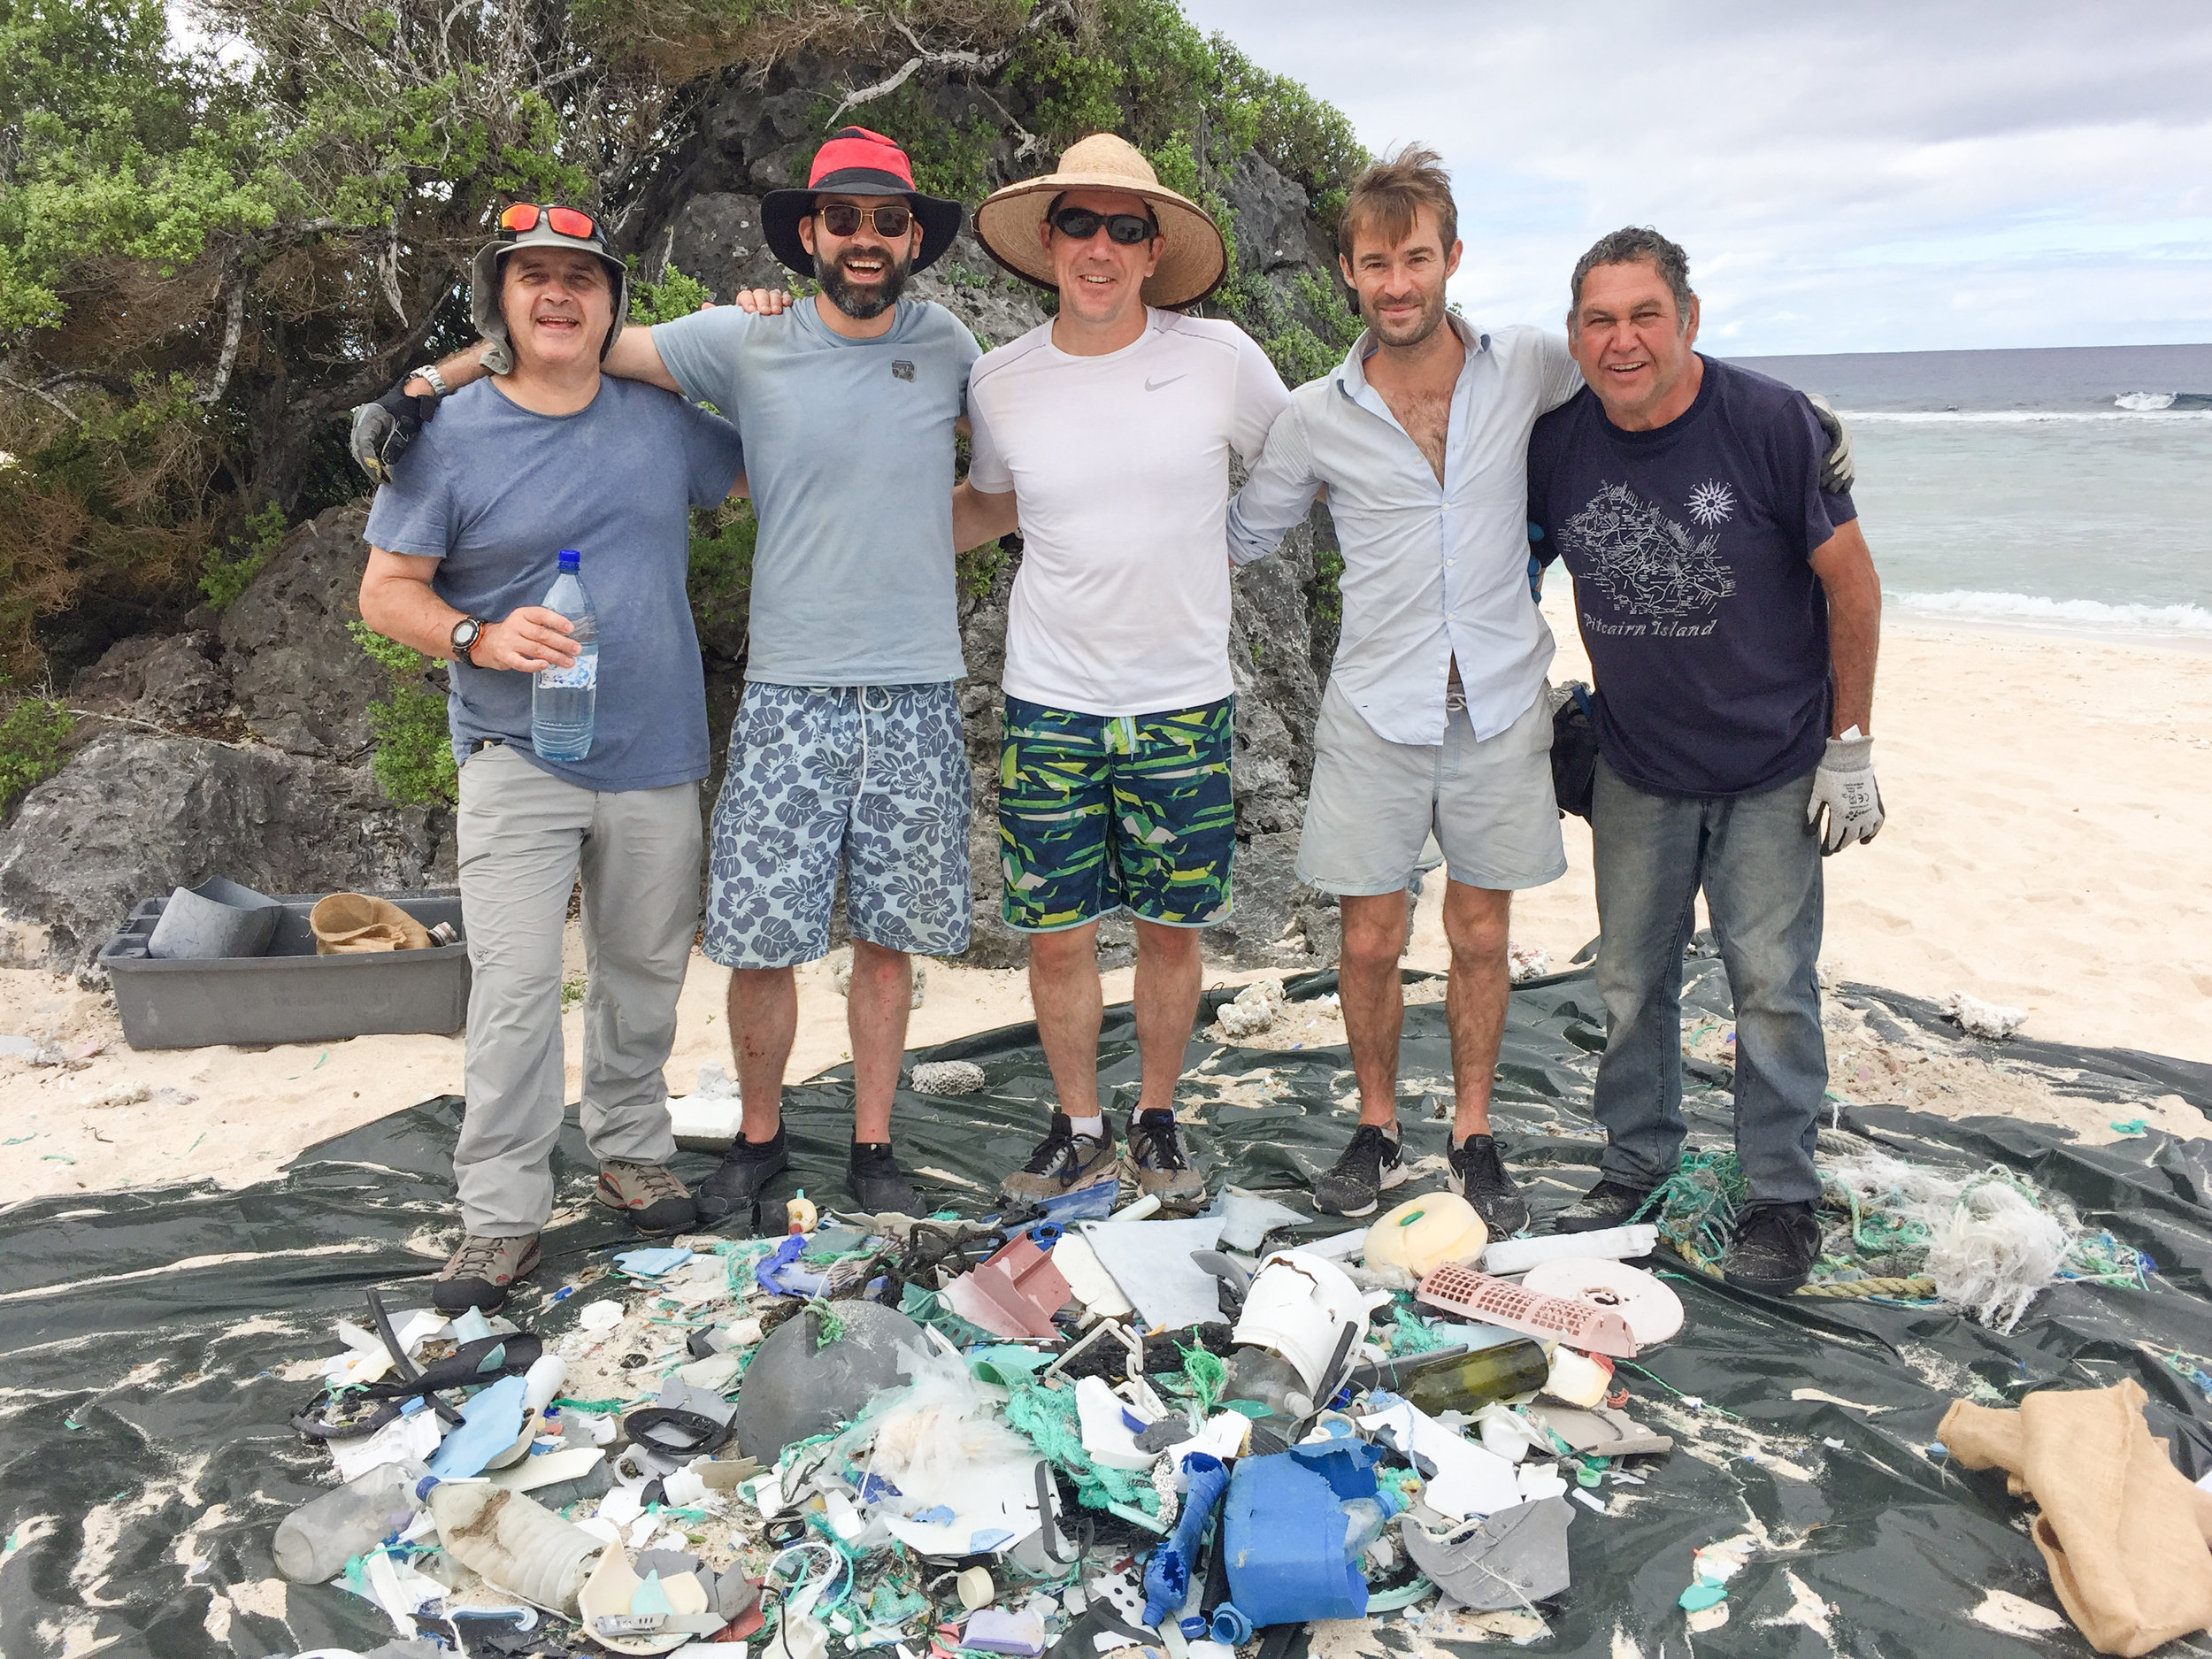 The team worked tirelessly for 351 in total, cleaning three beaches and collecting 14,000 lb of debris.